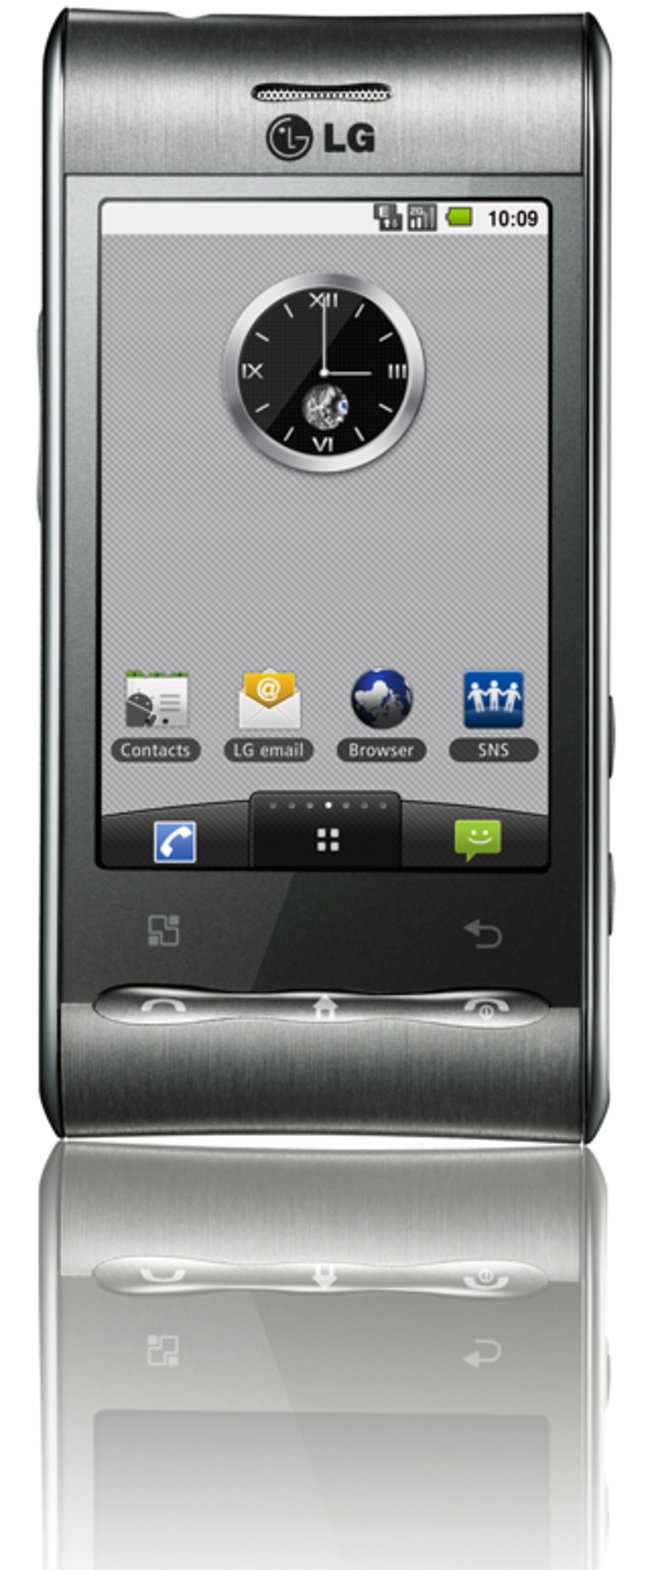 Android made easy with the LG Optimus - photo 7